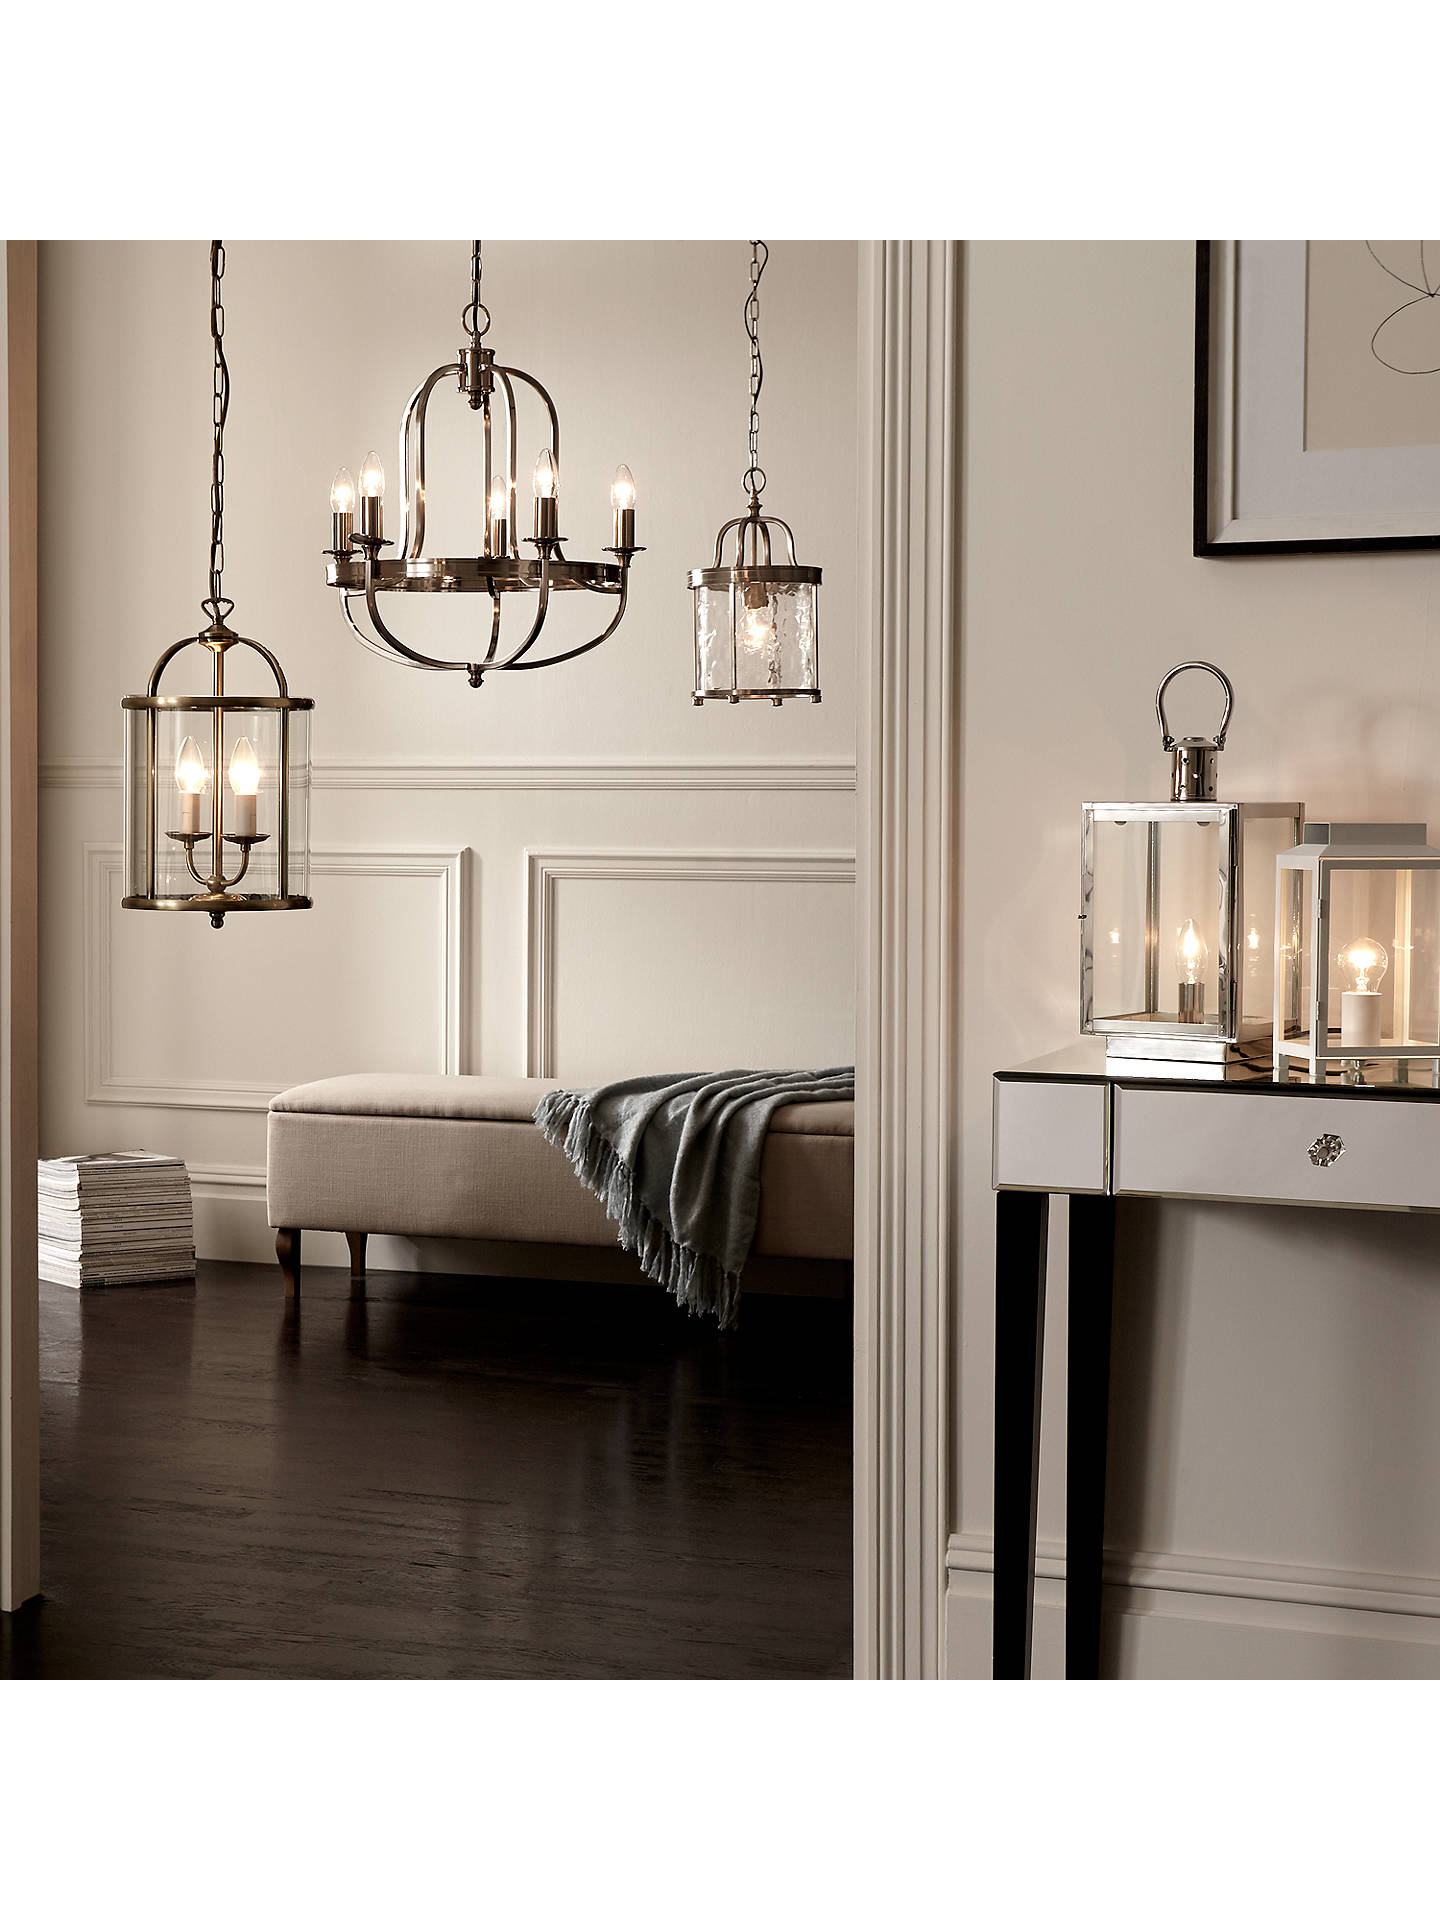 Buy John Lewis & Partners Walker Lantern Ceiling Light Online at johnlewis.com